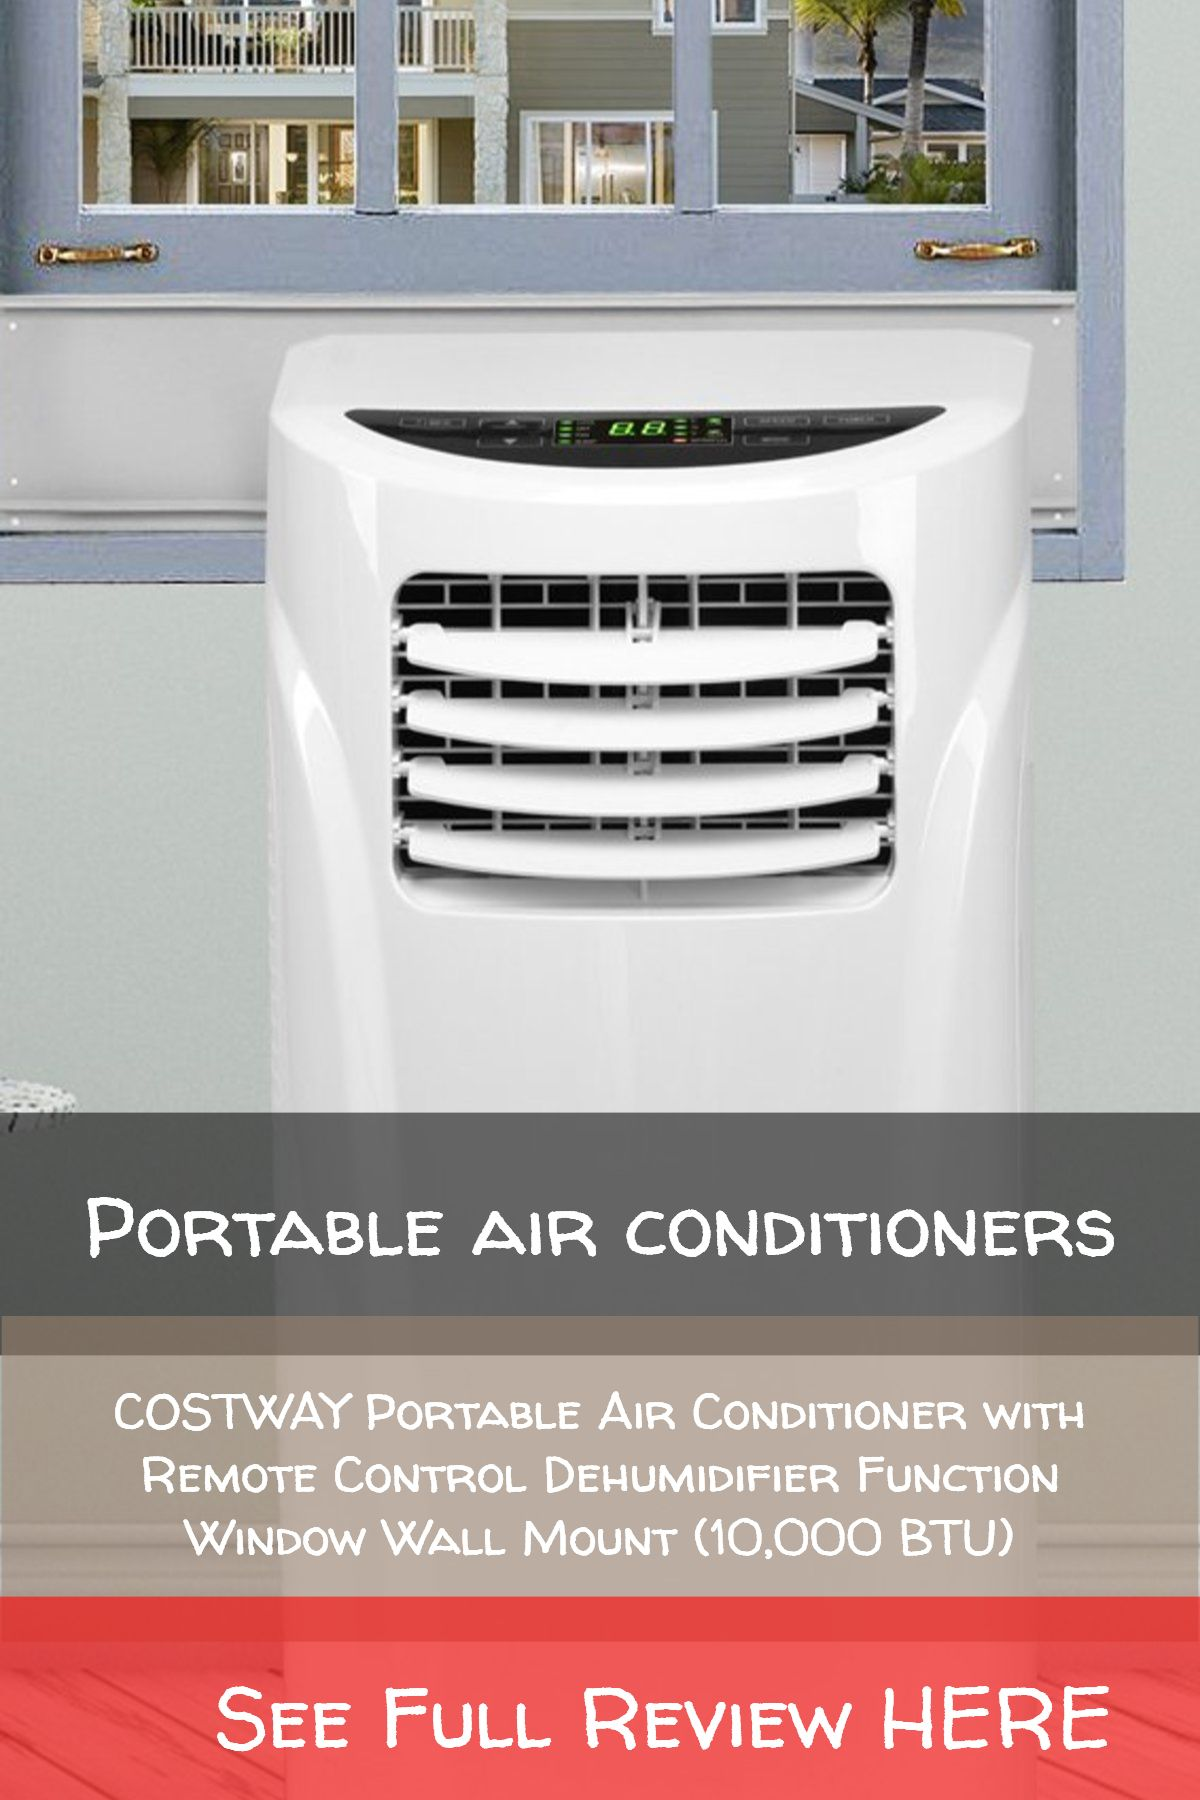 Portable air conditioners / COSTWAY Portable Air